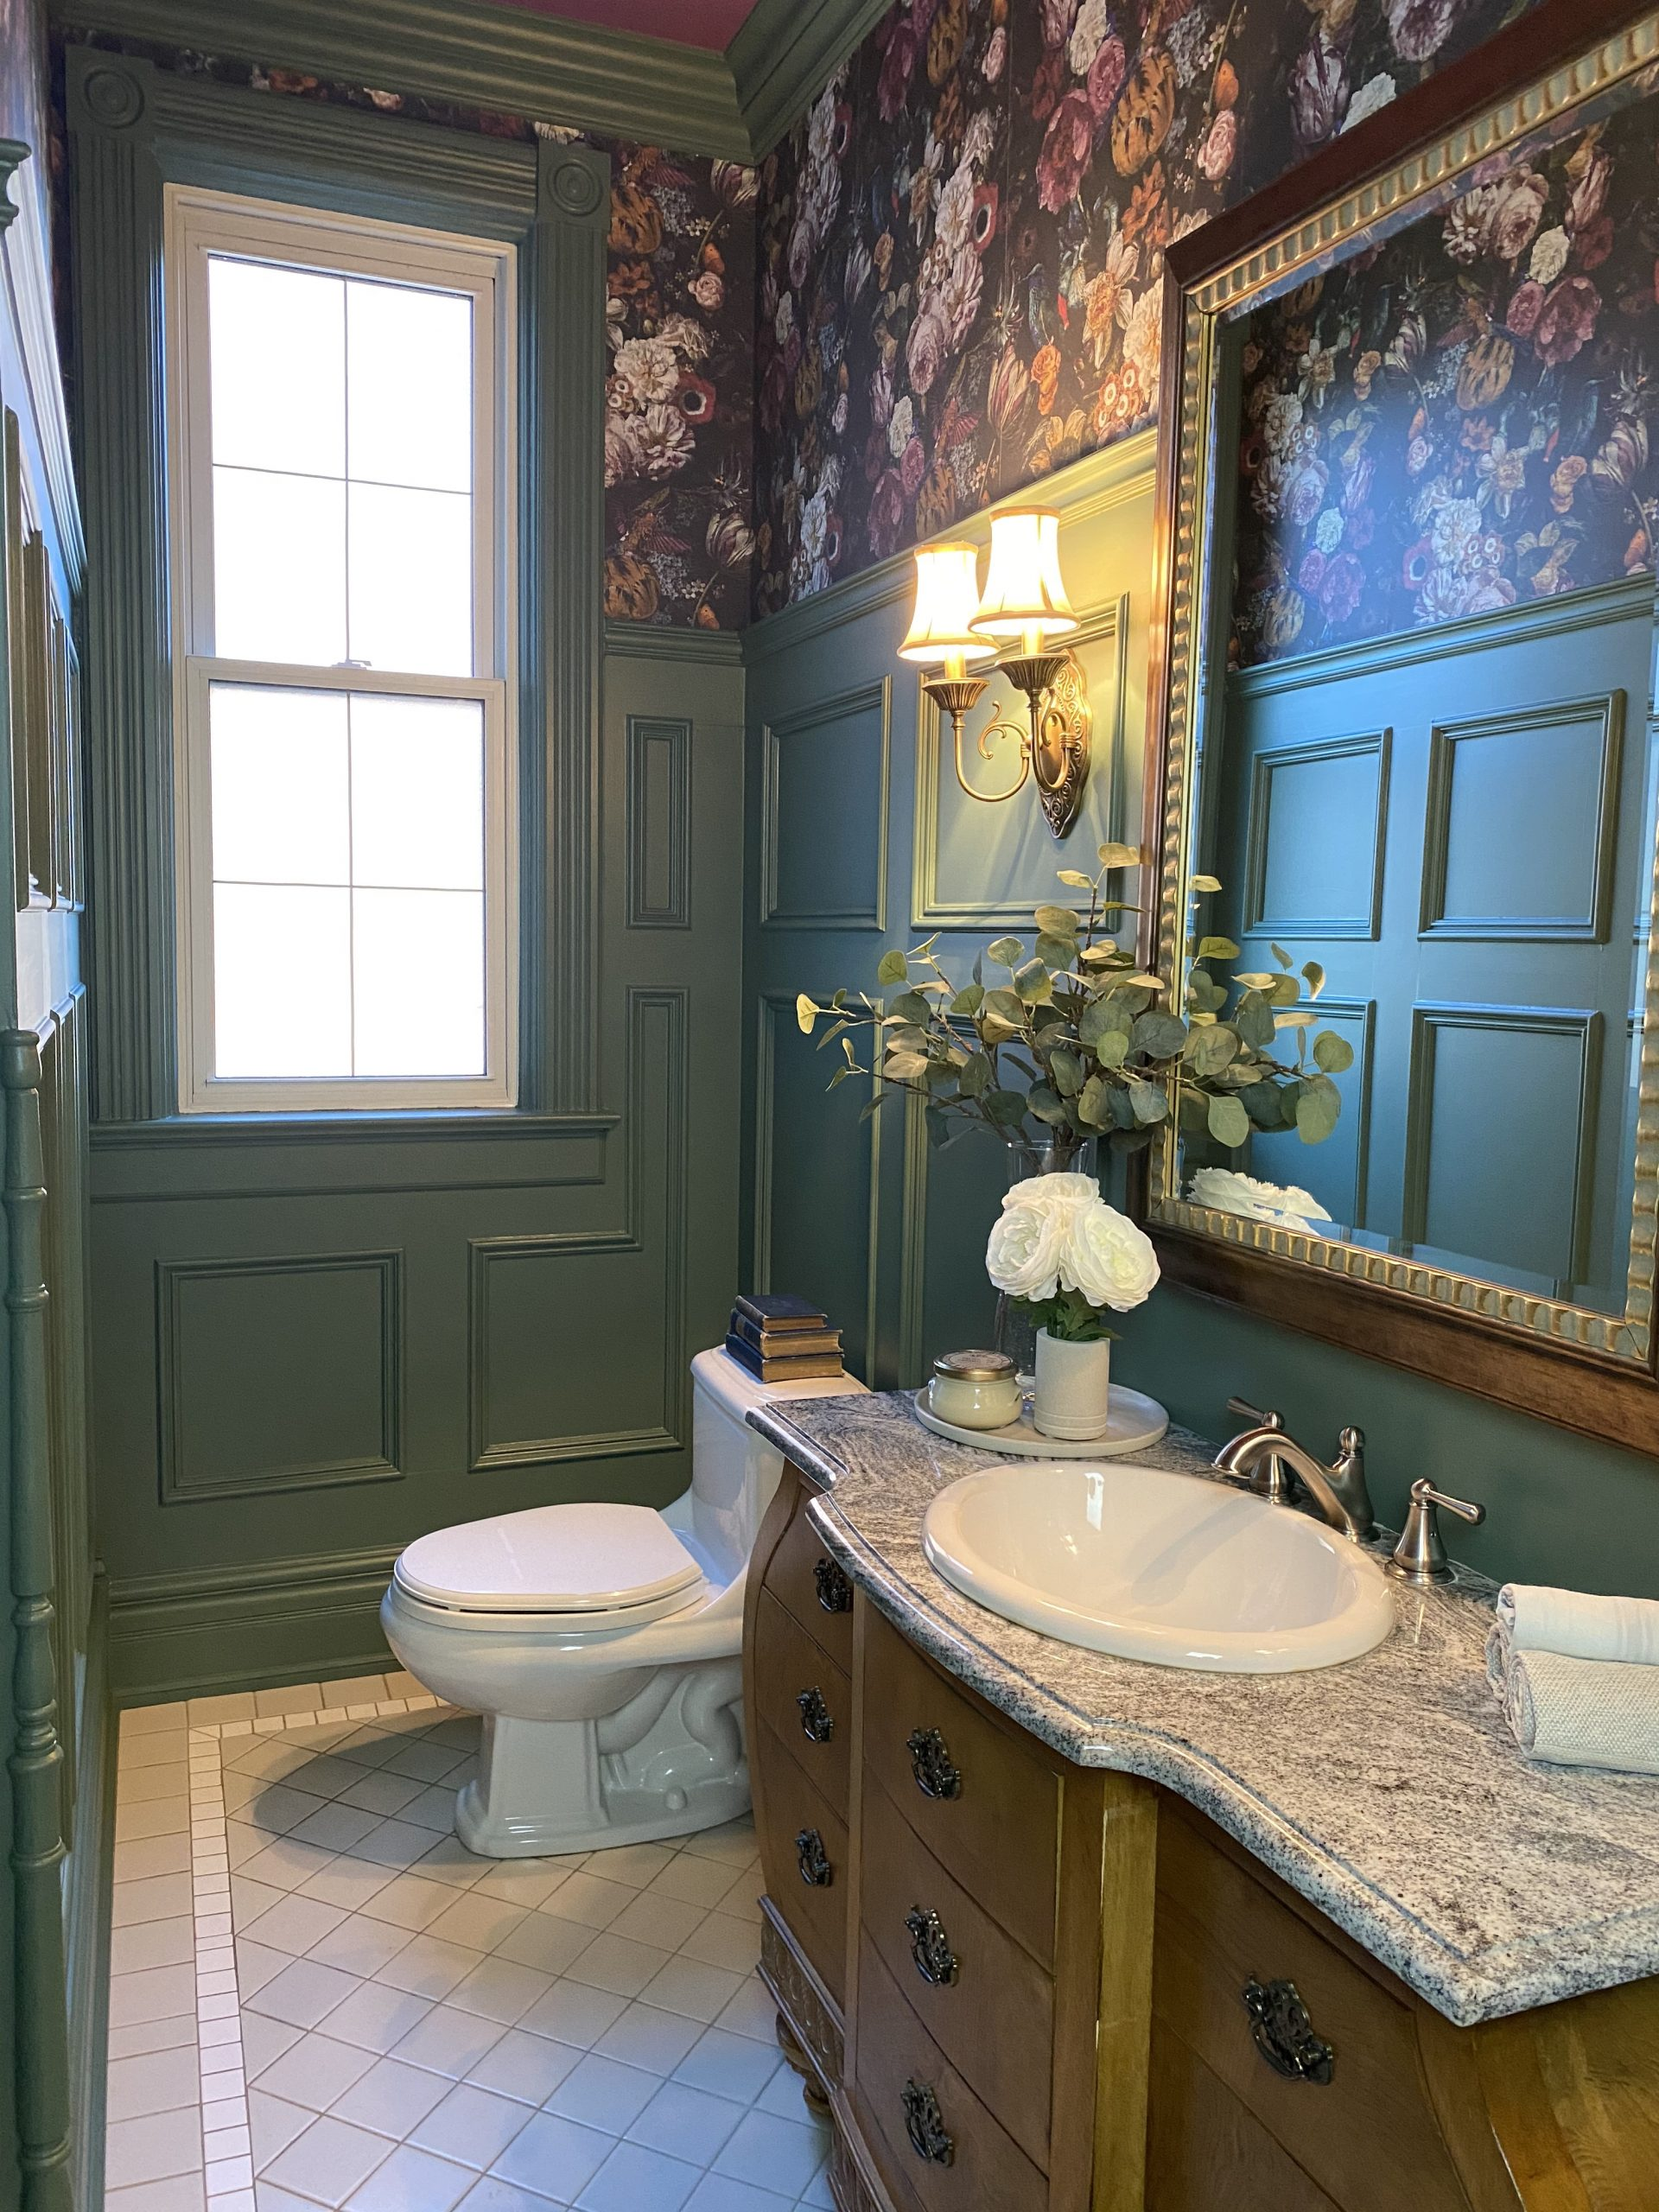 The Decorator played into the depth of the panel moulding for this stunning powder room design